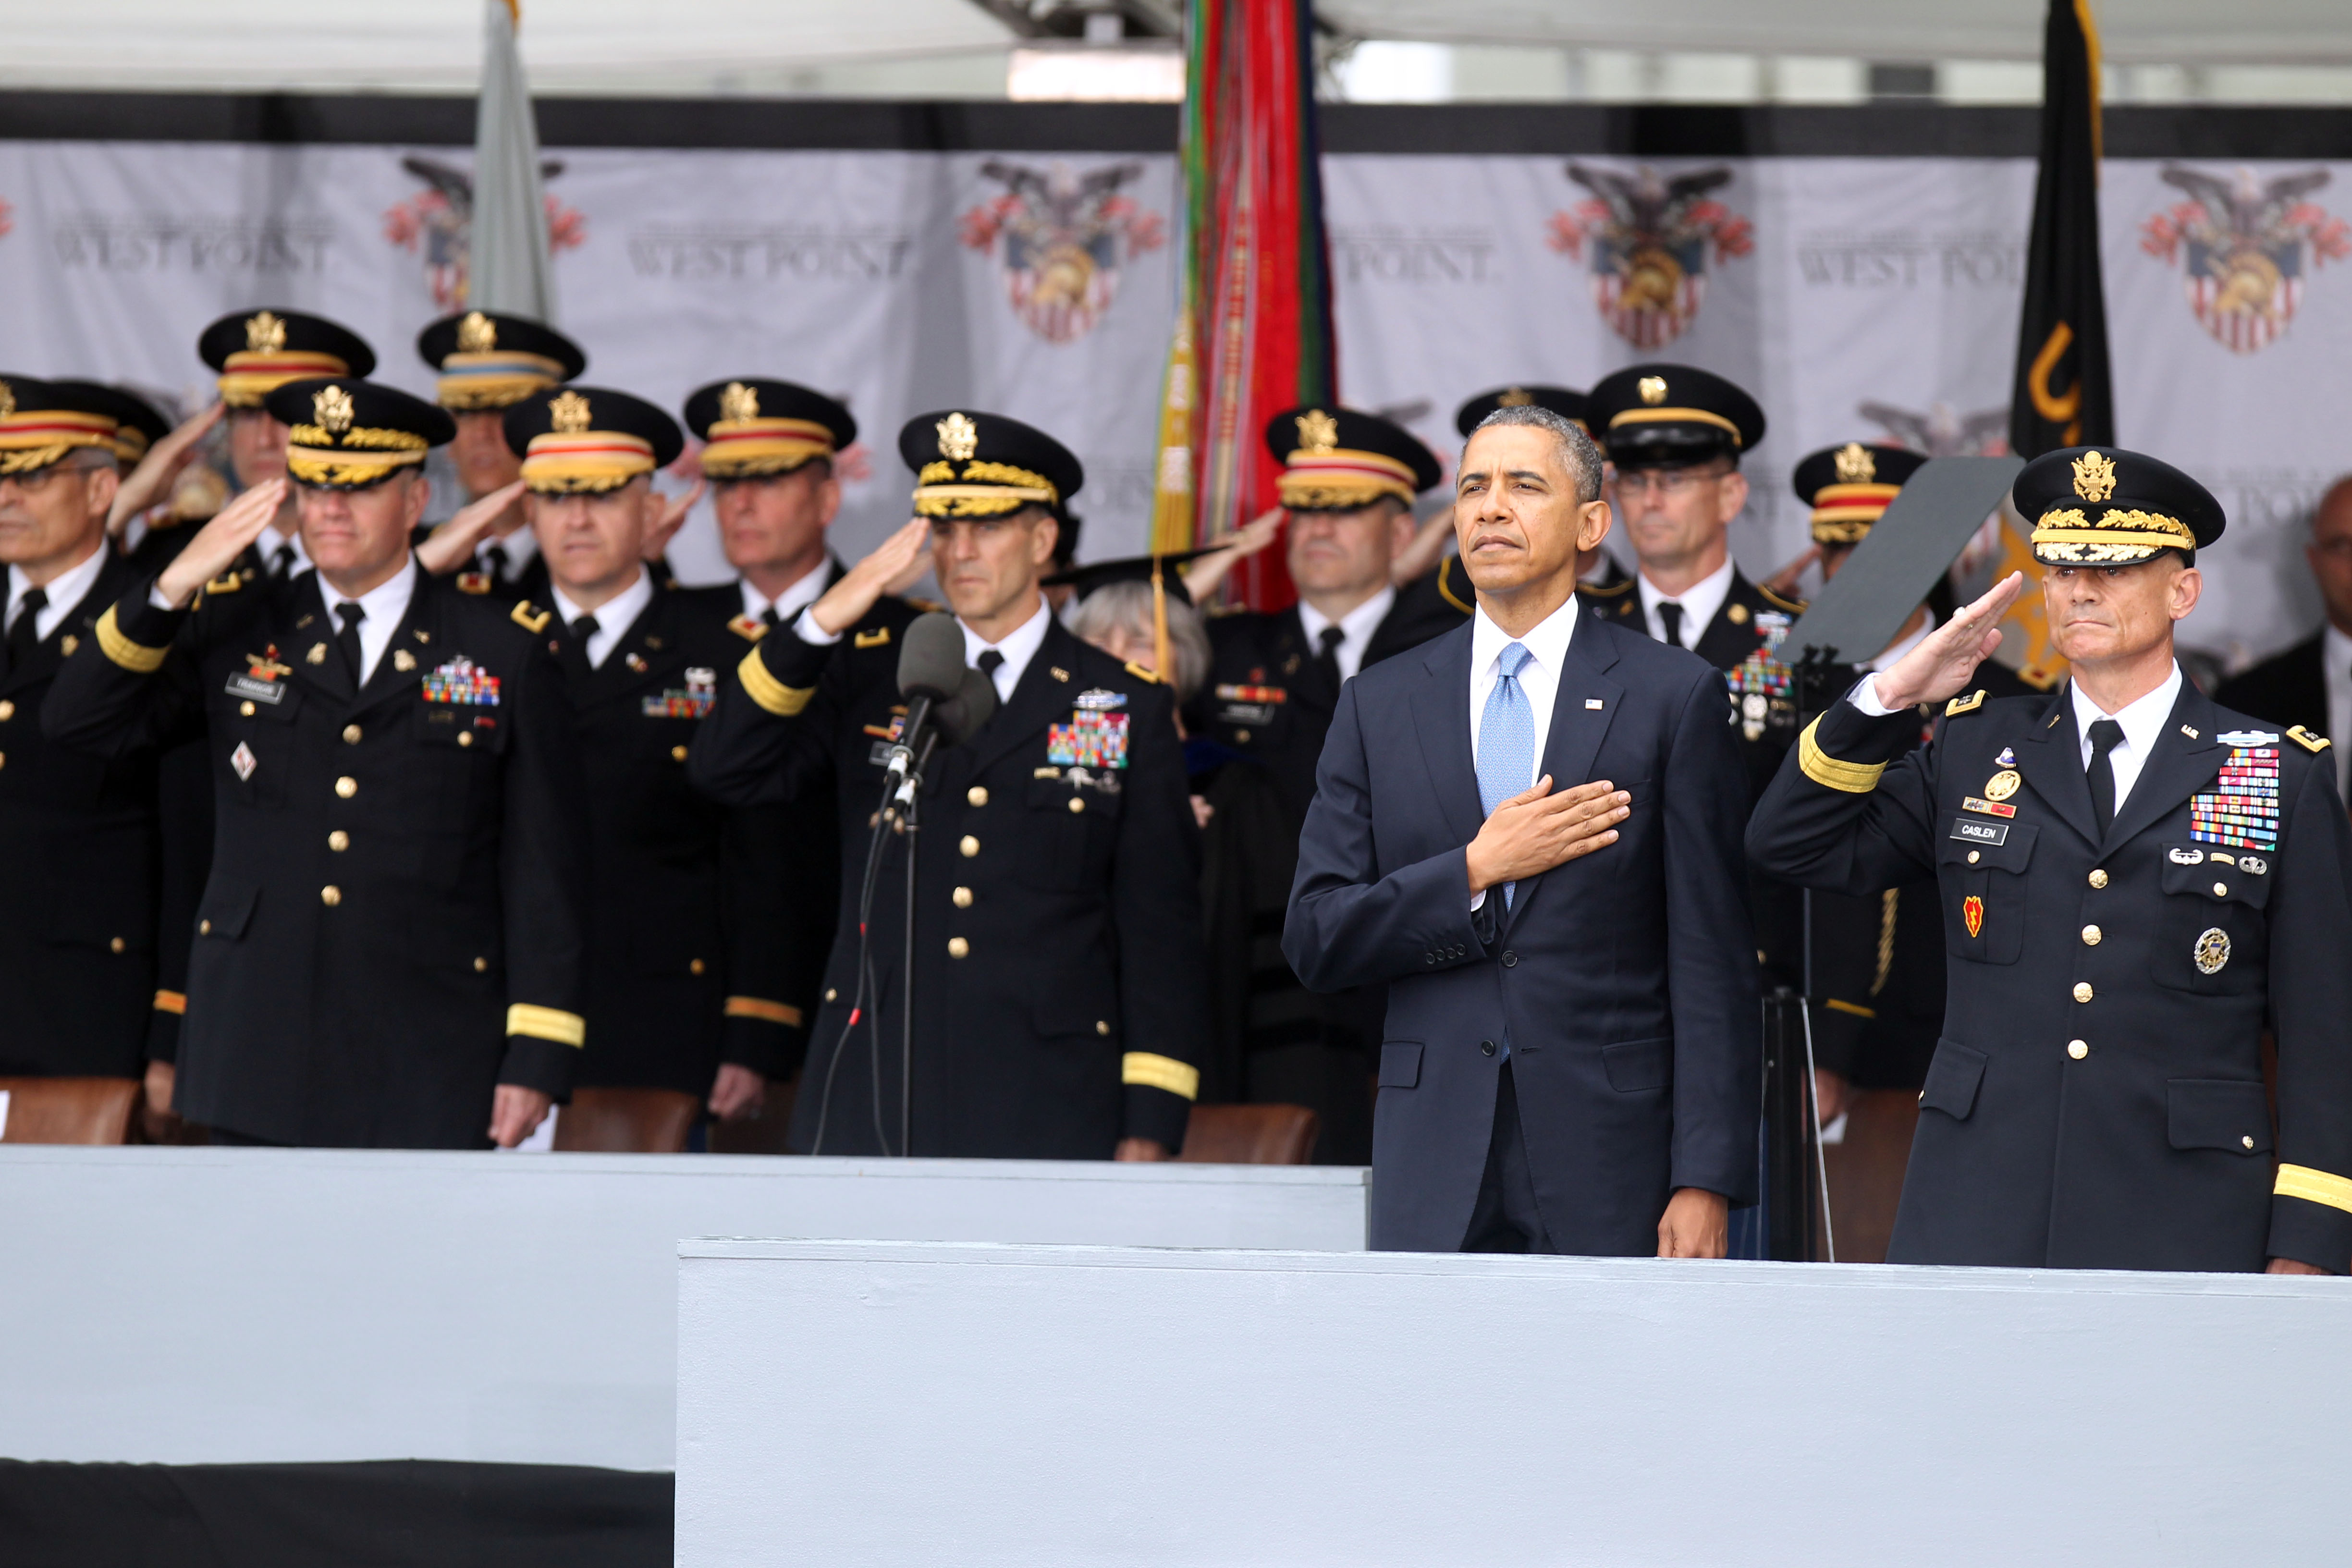 President Barack Obama attends the West Point Graduation on May 28, 2014 in West Point, New York.